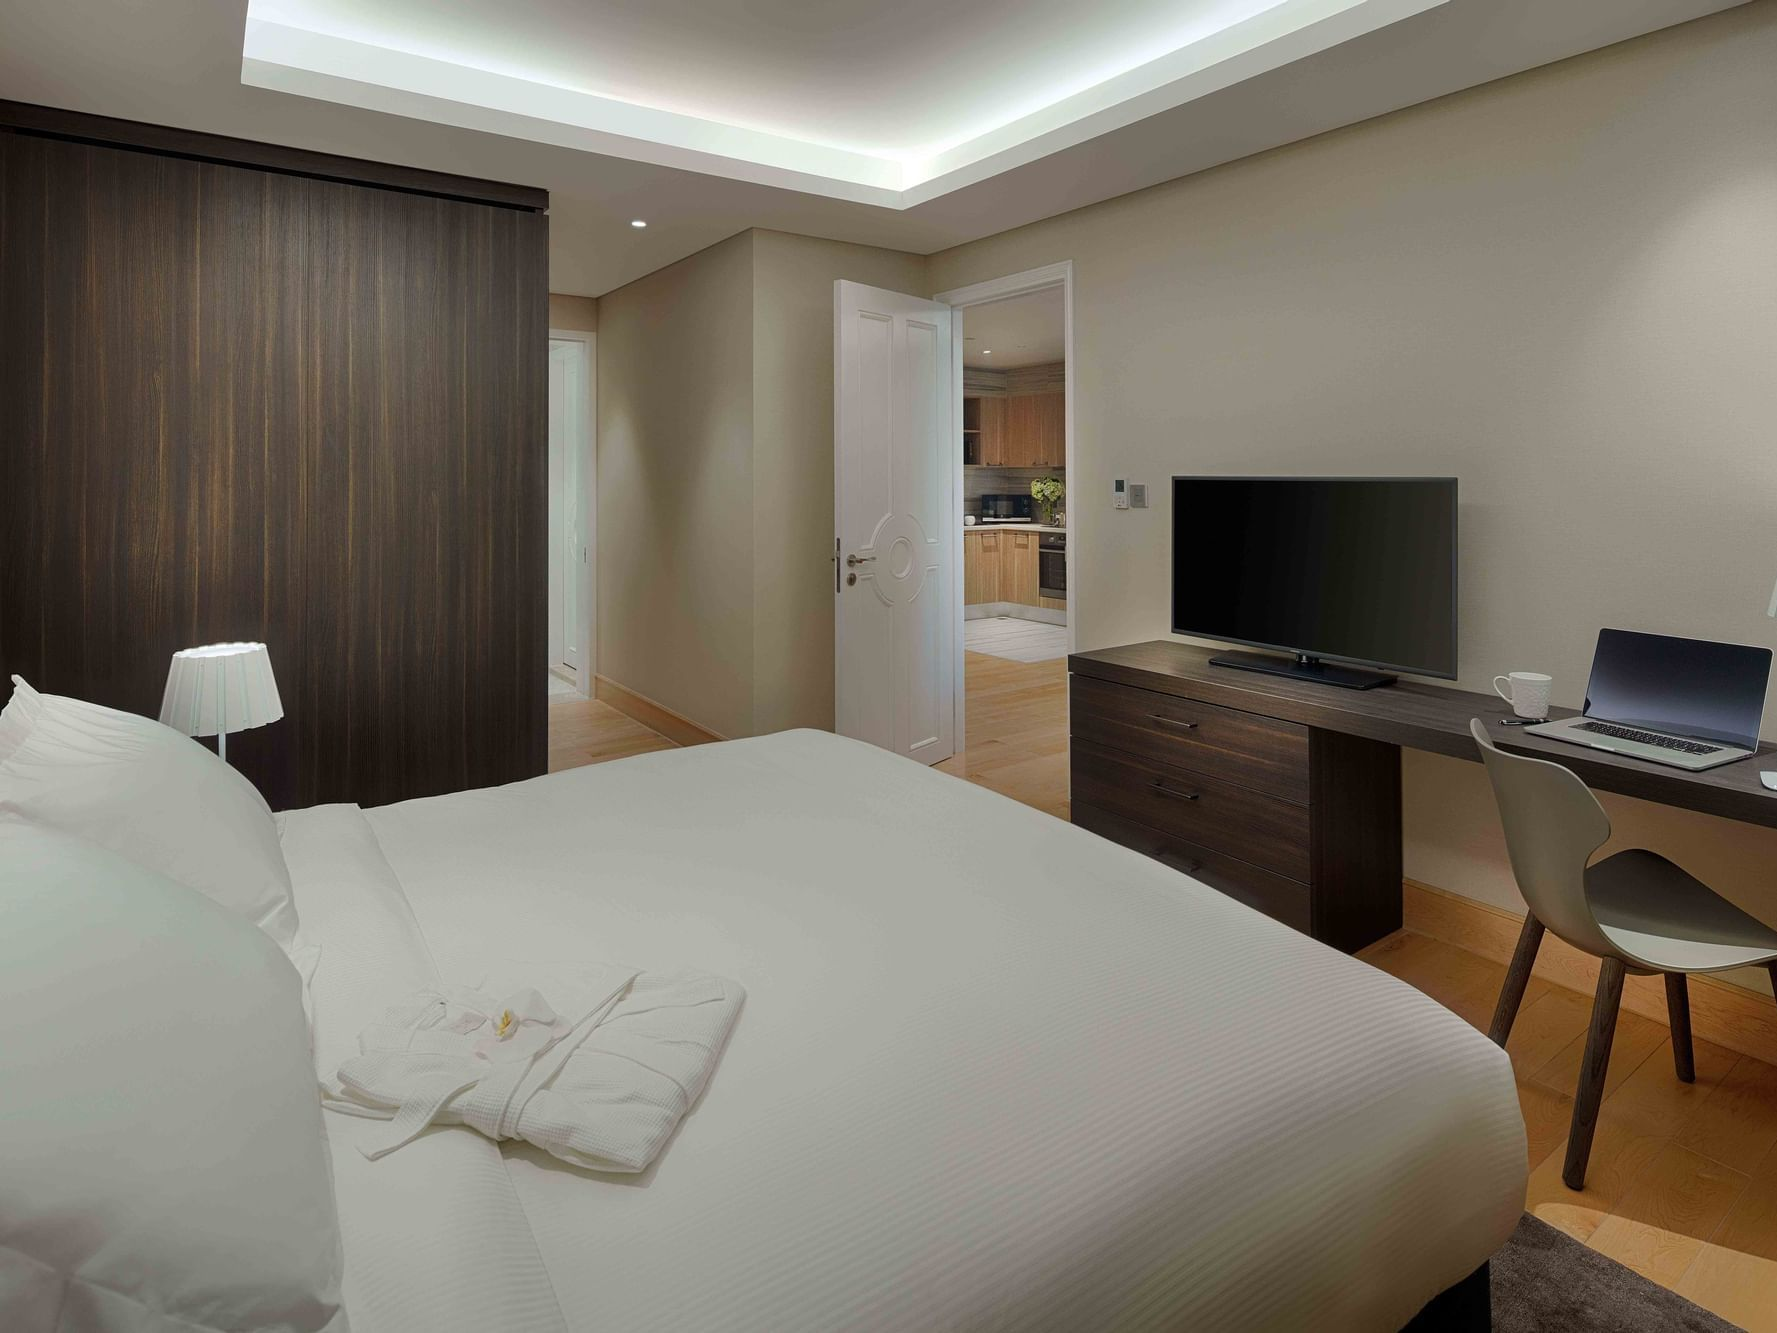 hotel room with king bed and study table in front